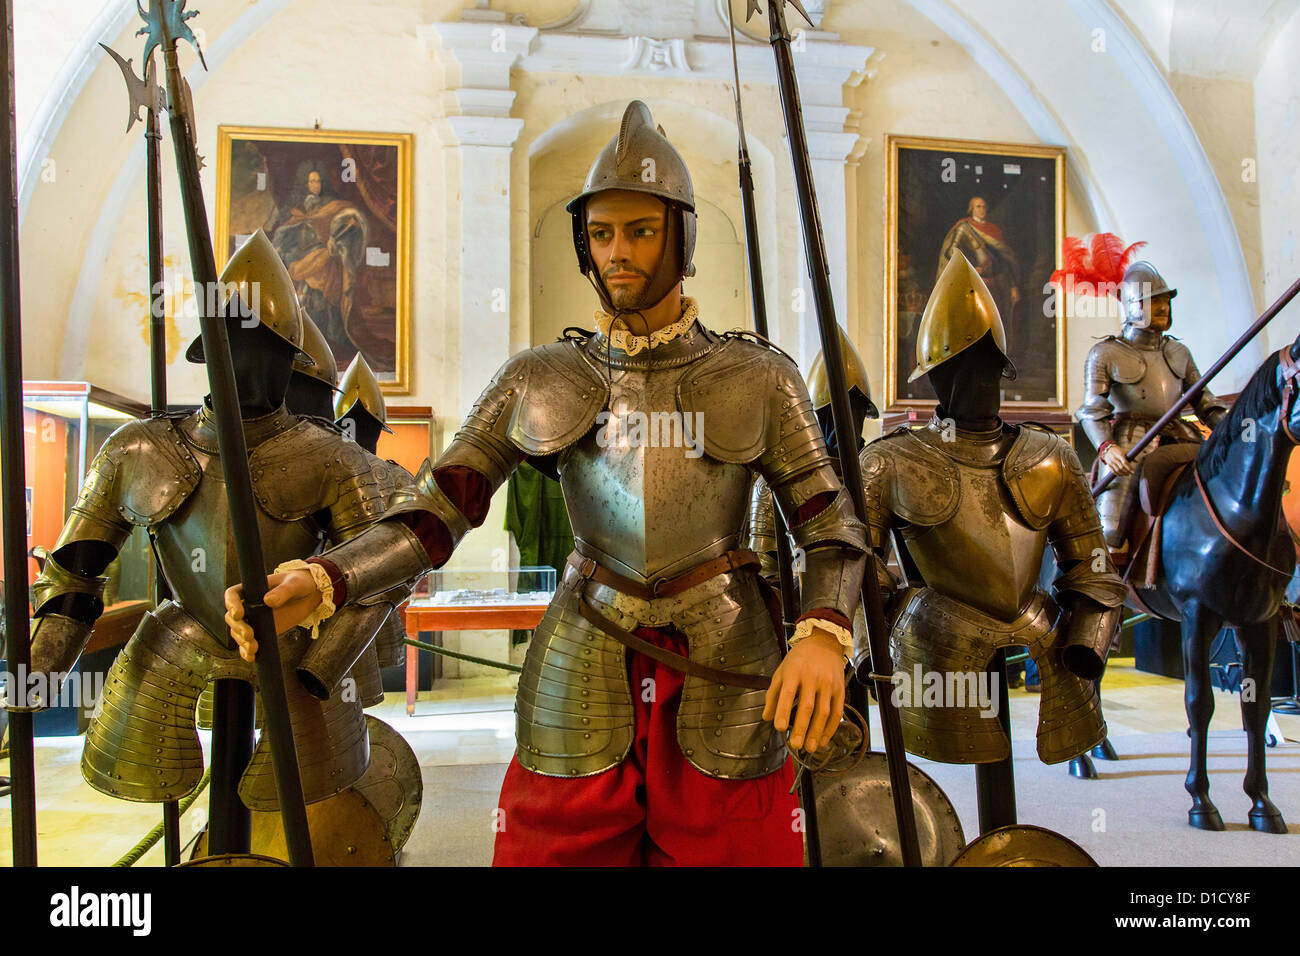 Valletta Knight' armour at Grand Master's Palace museum - Stock Image